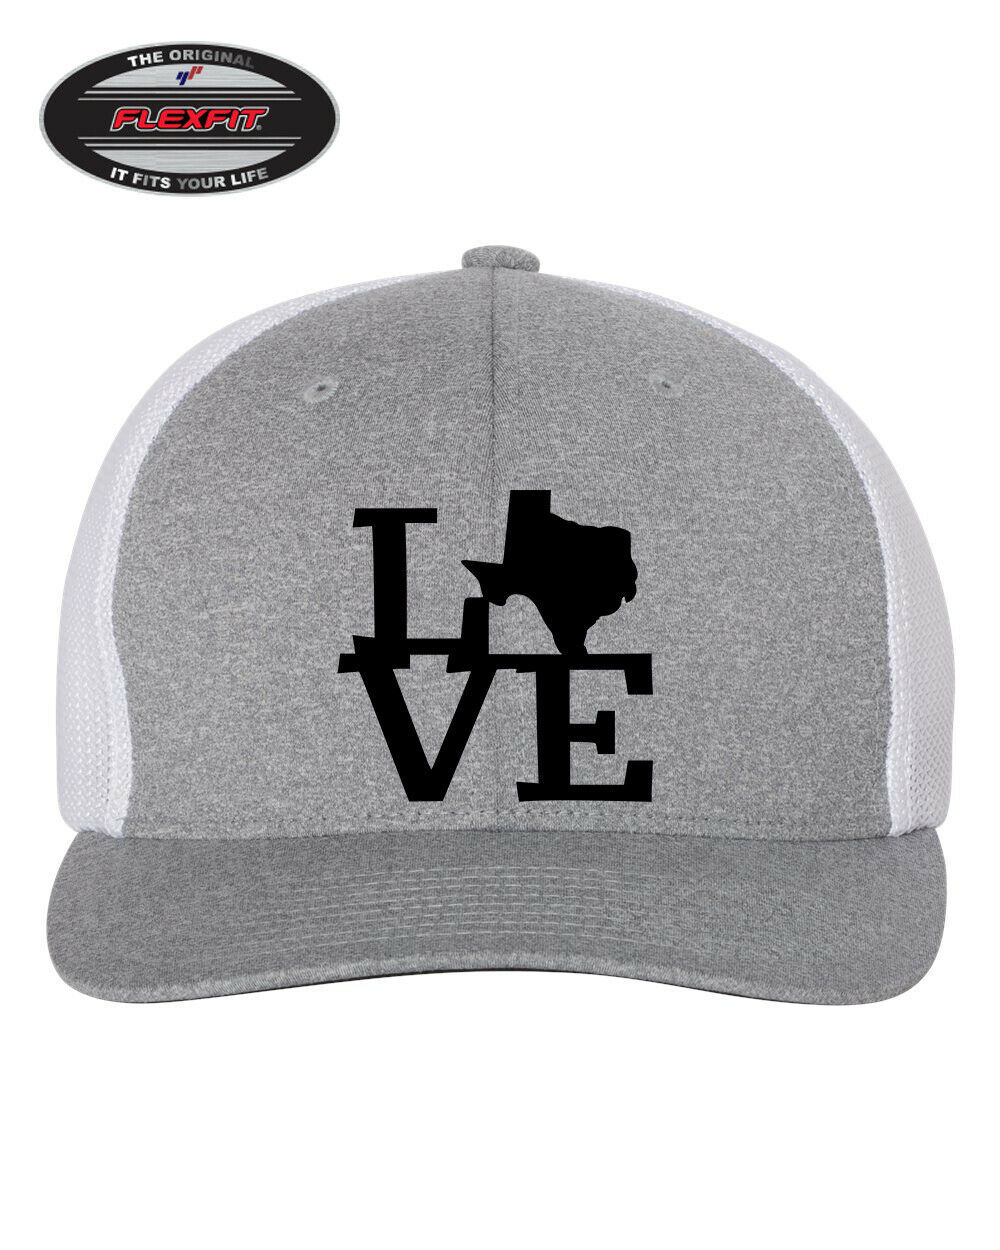 I LOVE TEXAS STATE HOME Trucker Cap FLEXFIT HAT *FREE SHIPPING in BOX*